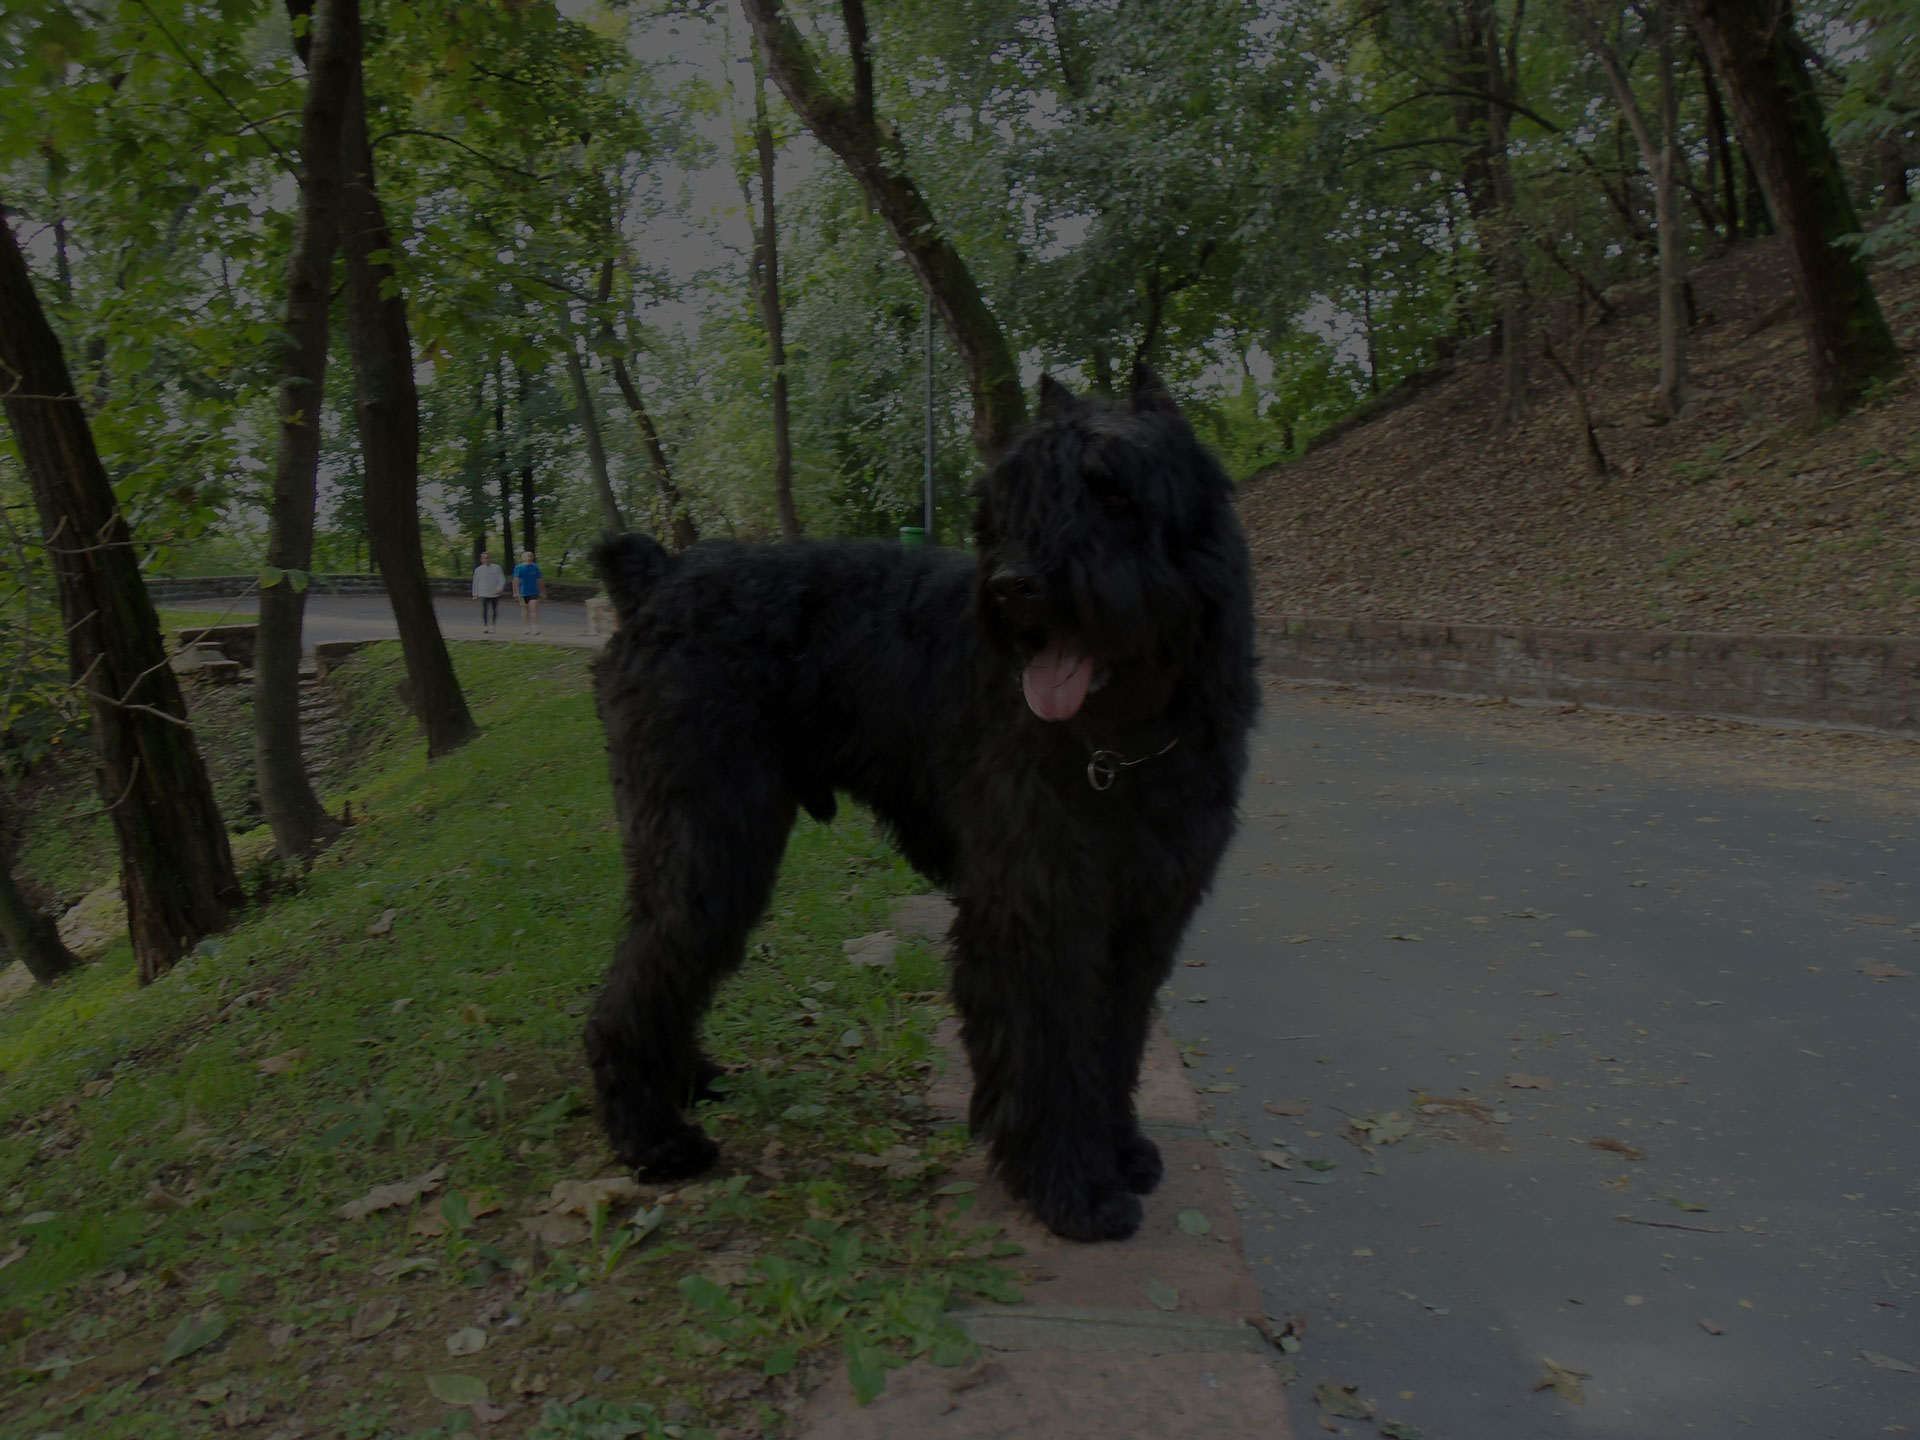 Black dog on road